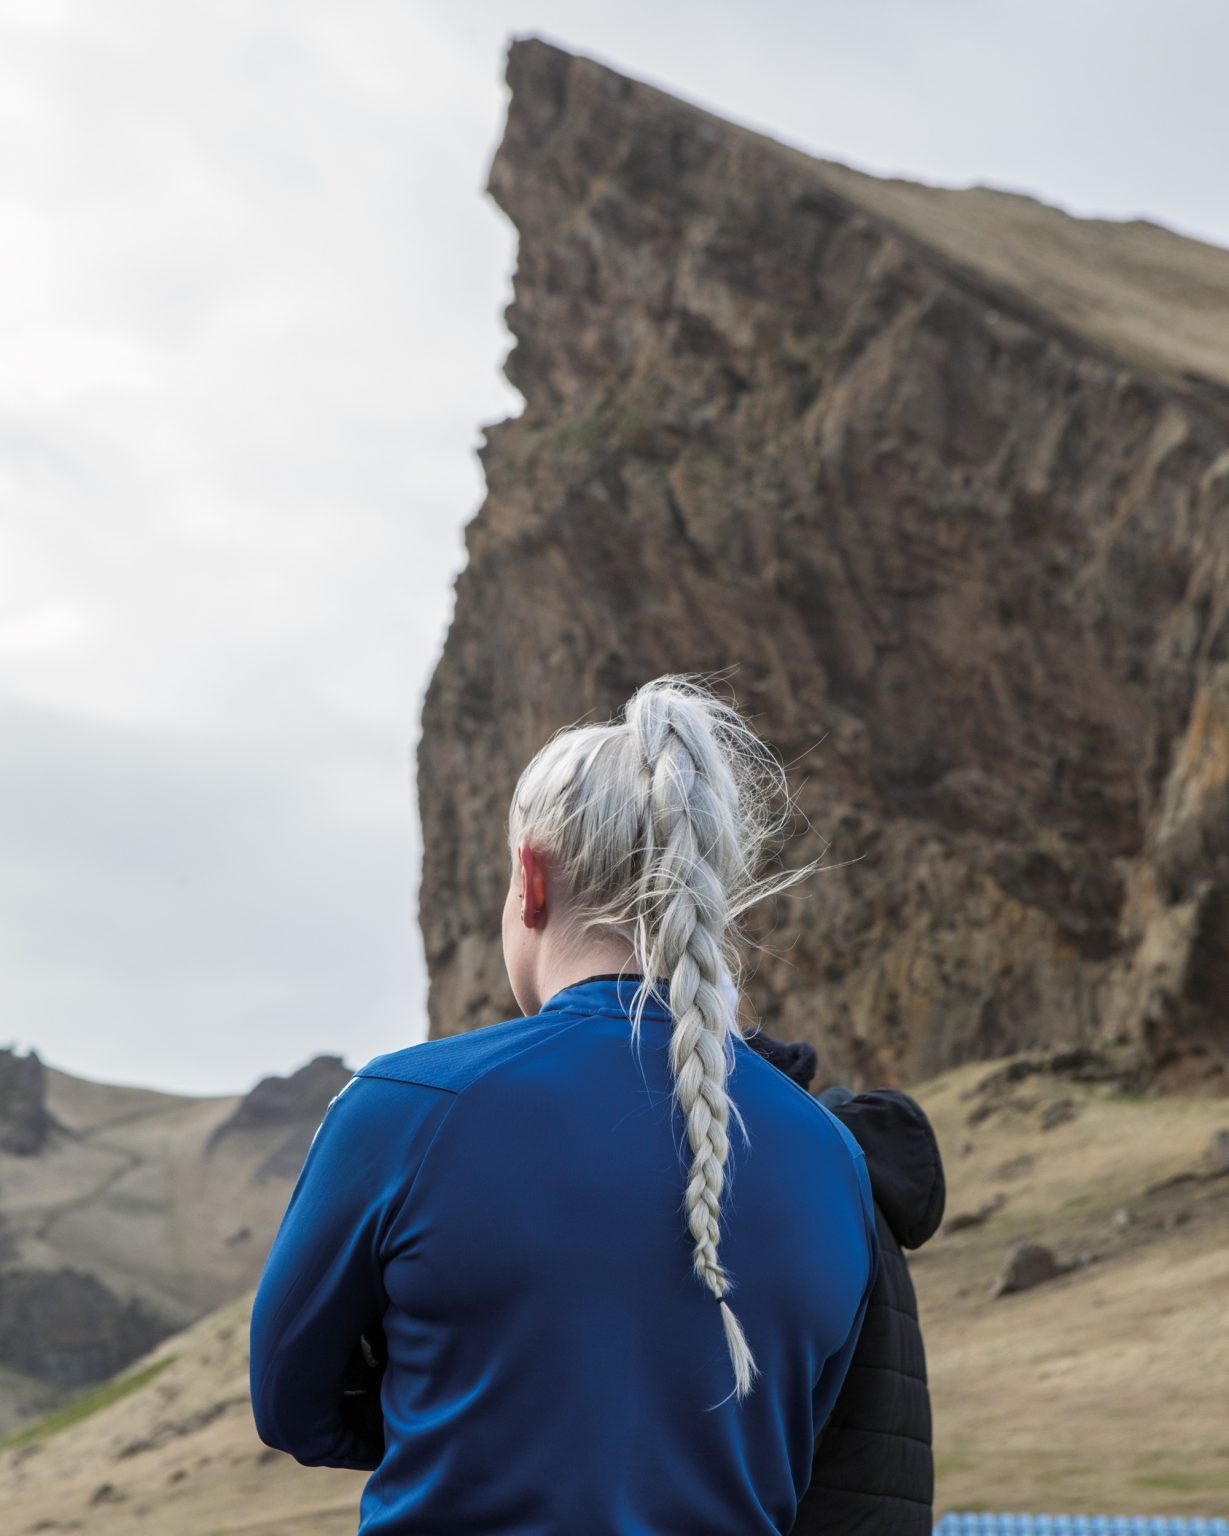 In Iceland, football is the second most popular sport among women after team gymnastics. Vestmannaeyjar, Iceland, 2018